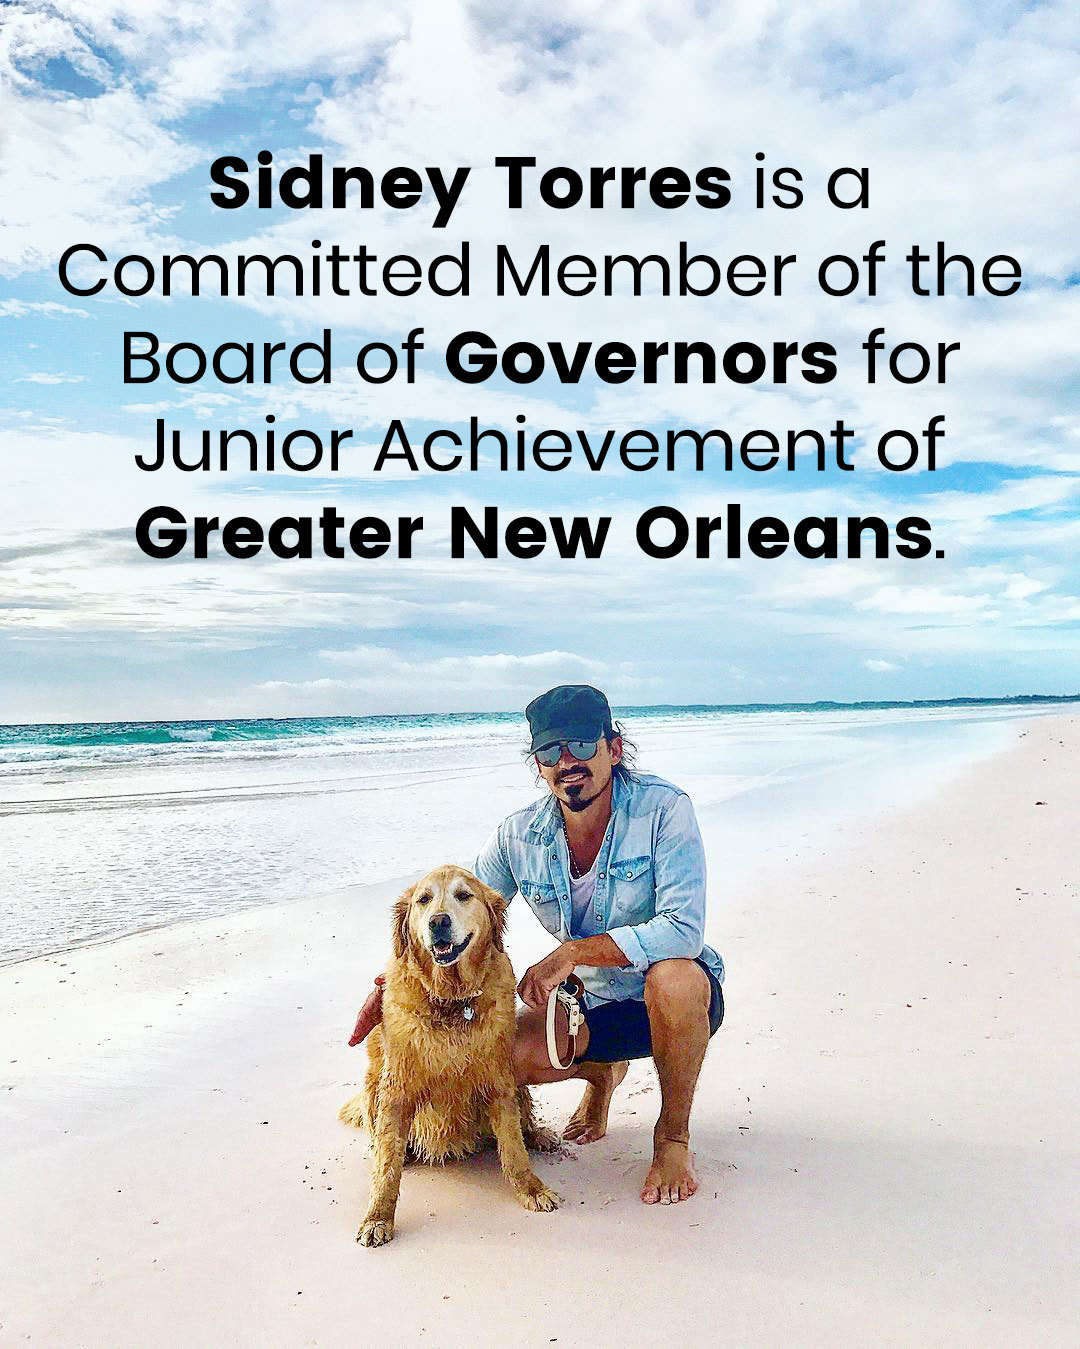 Sidney Torres is a Committed Member of the Board of Governors